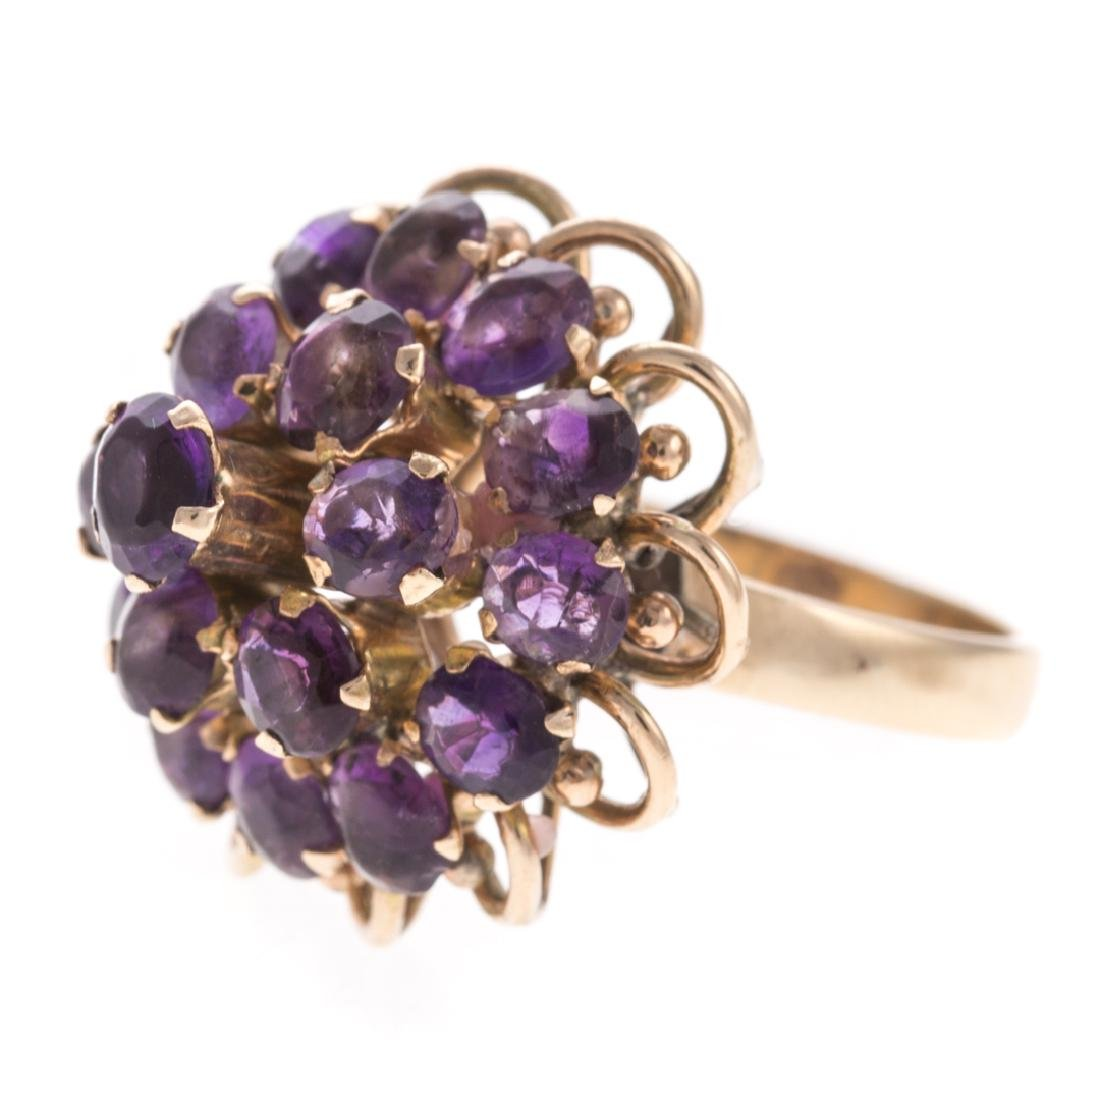 A Lady's Amethyst Ring & Earrings - 4